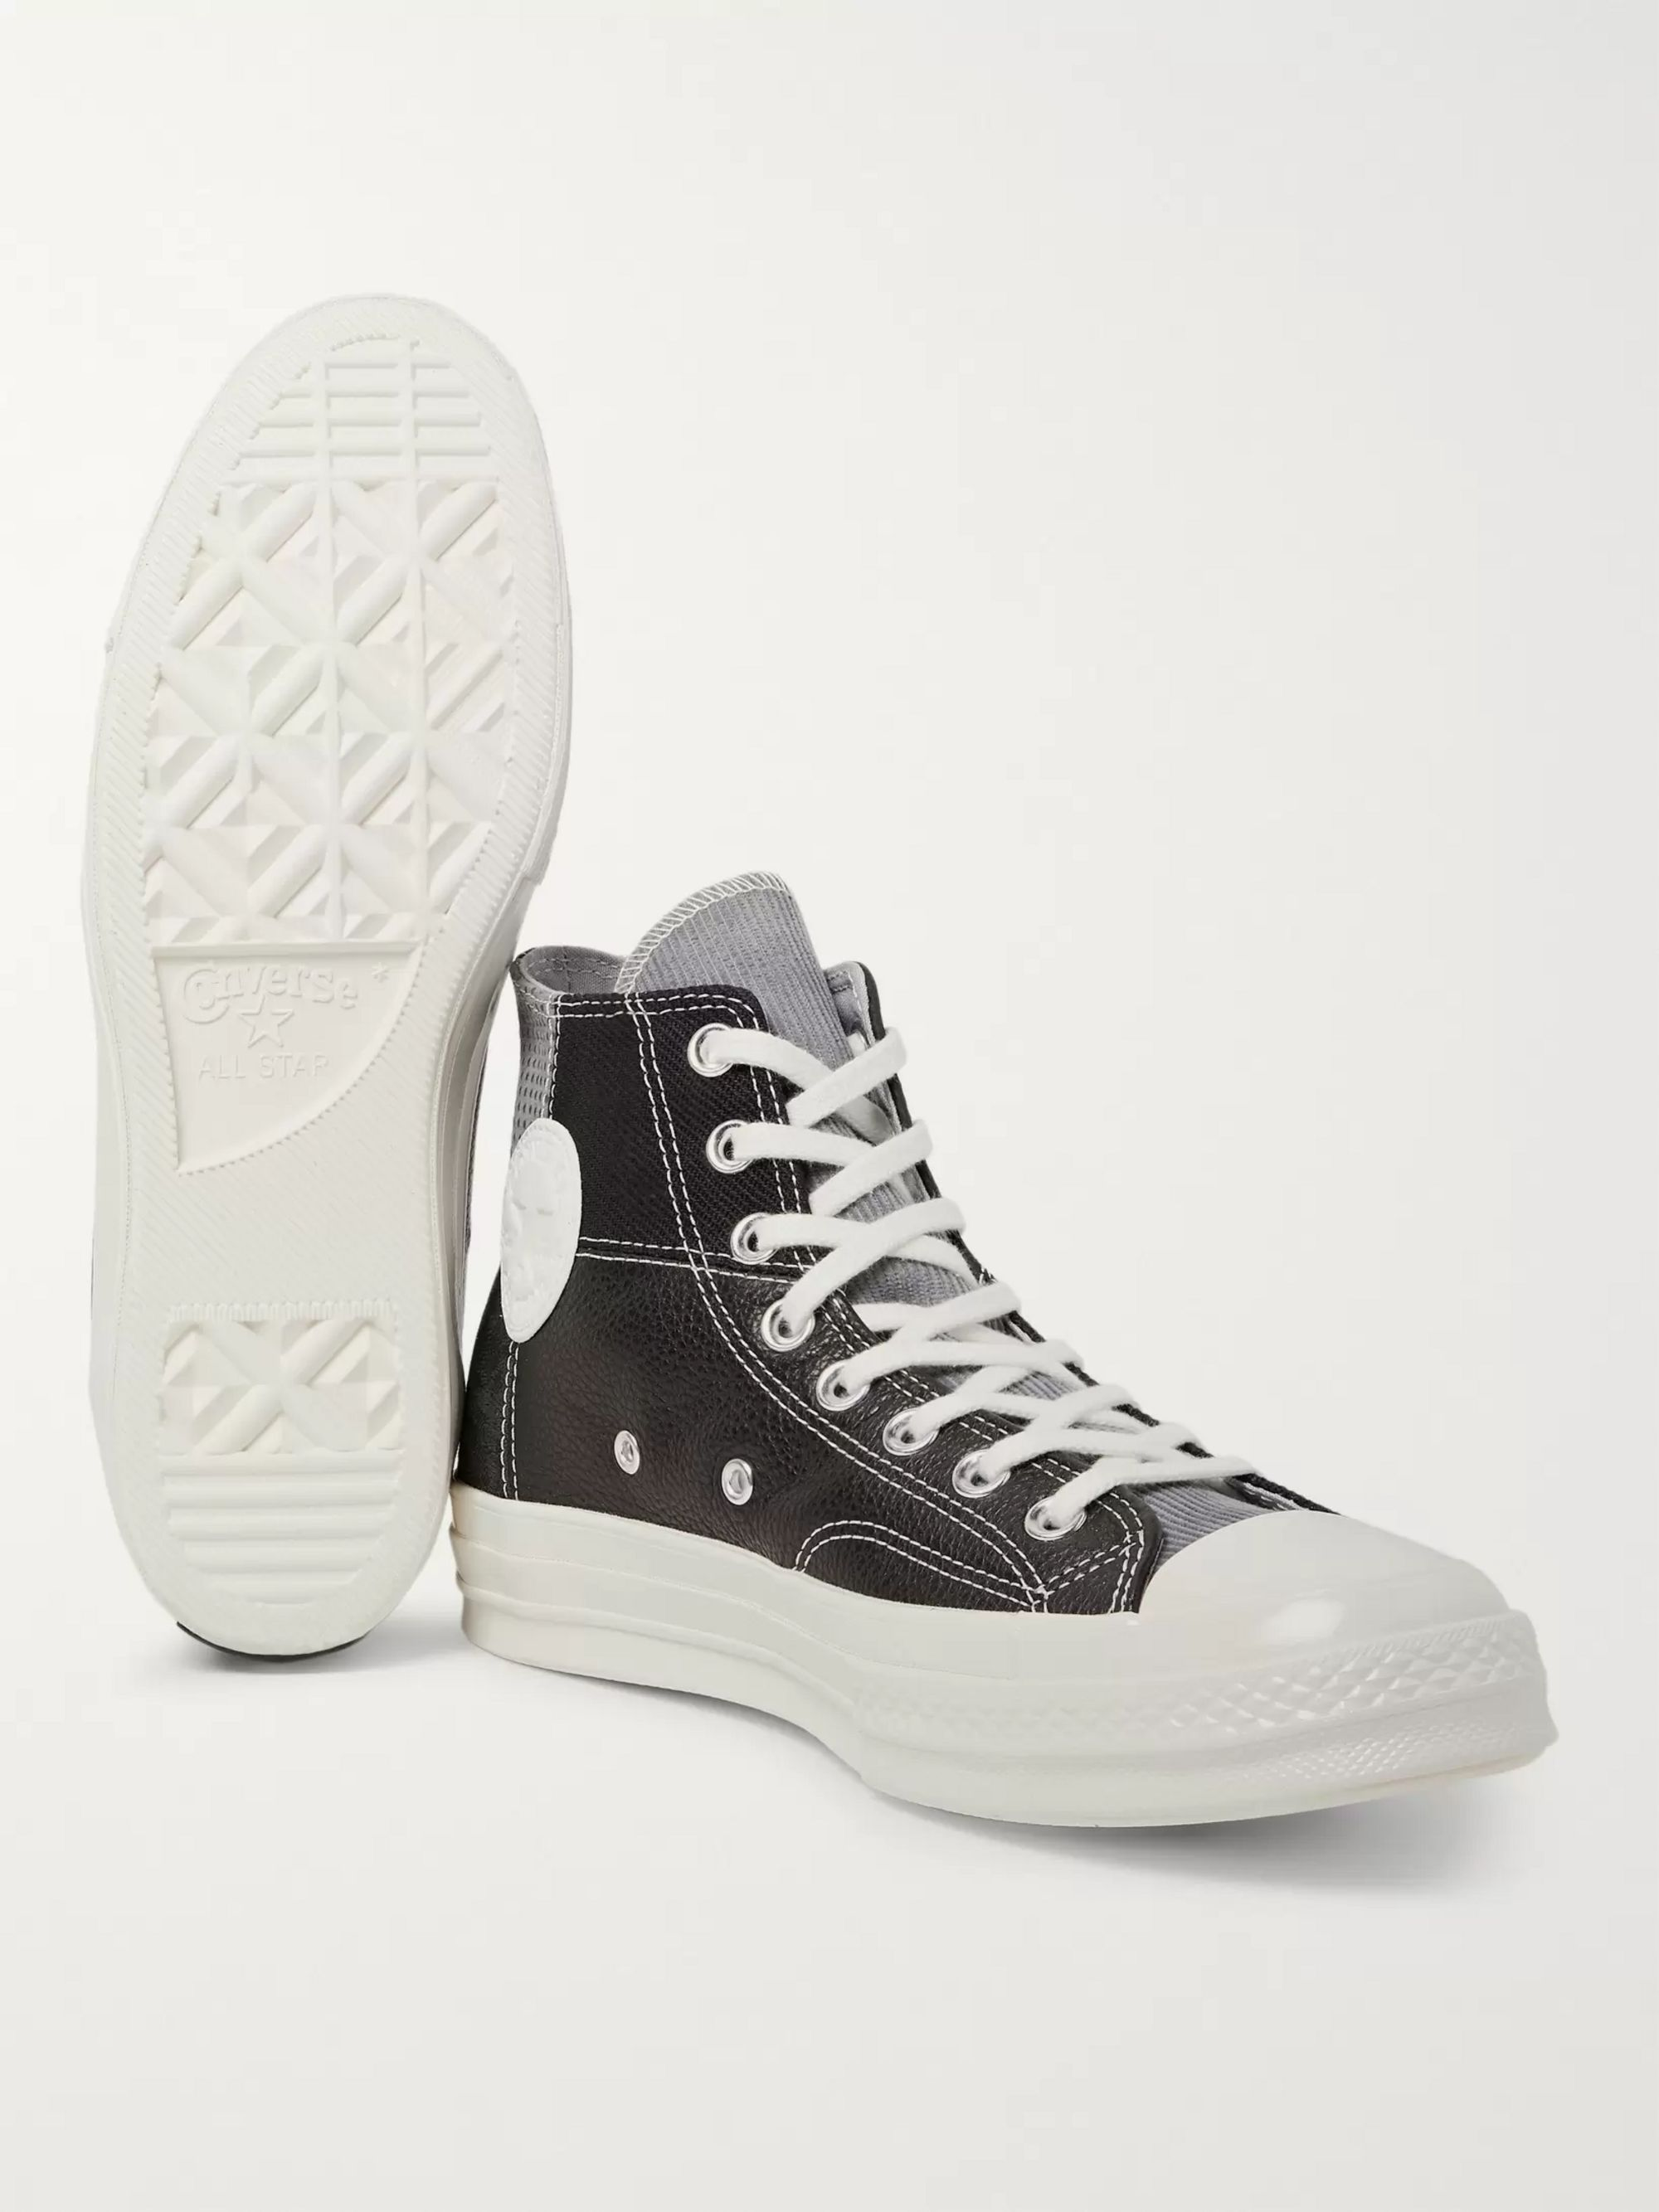 Converse 1970s Chuck Taylor All Star Patchwork Leather, Corduroy and Twill High-Top Sneakers